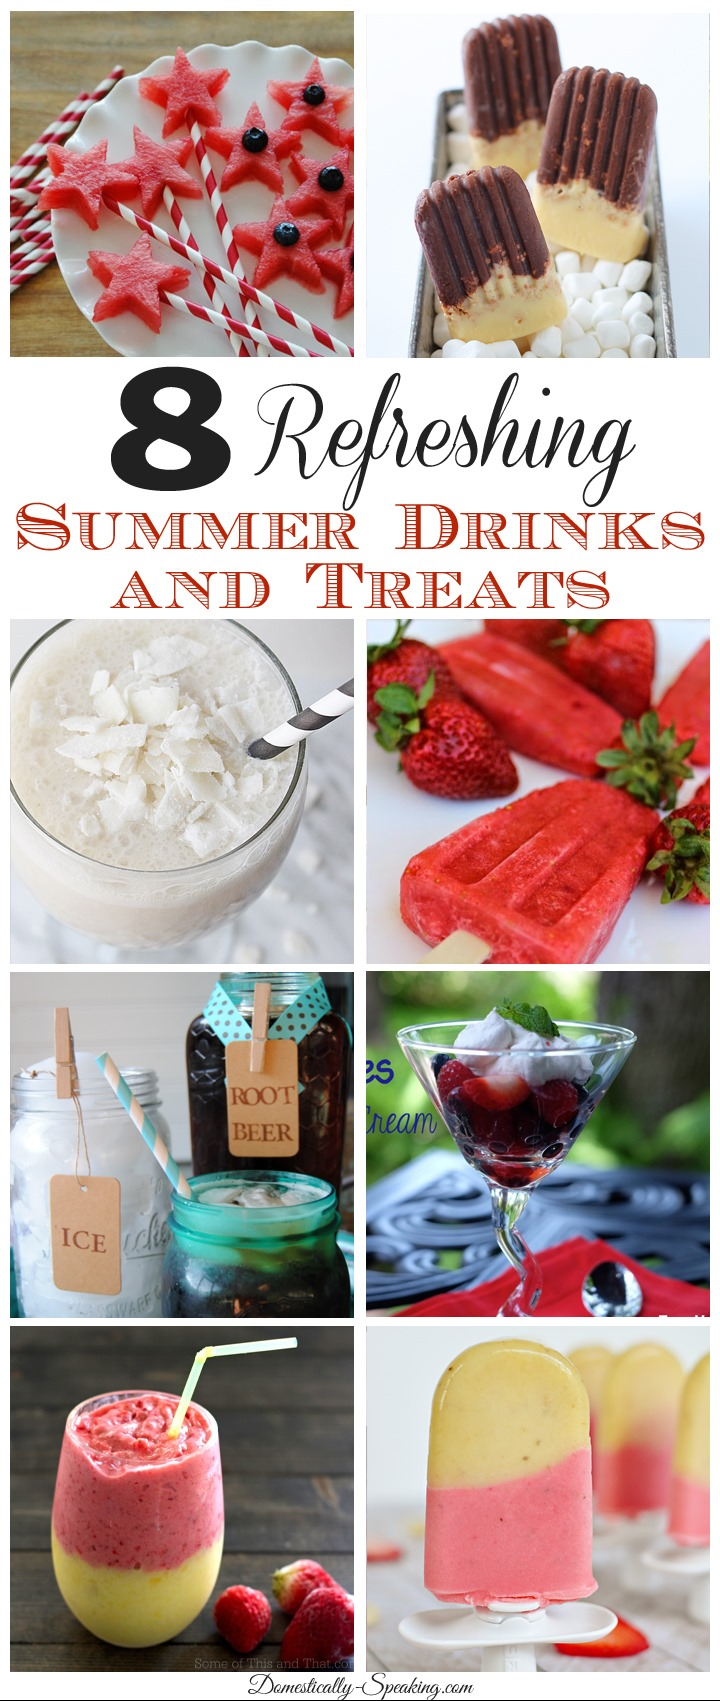 8-Refreshing-Summer-Drinks-and-Treats_thumb